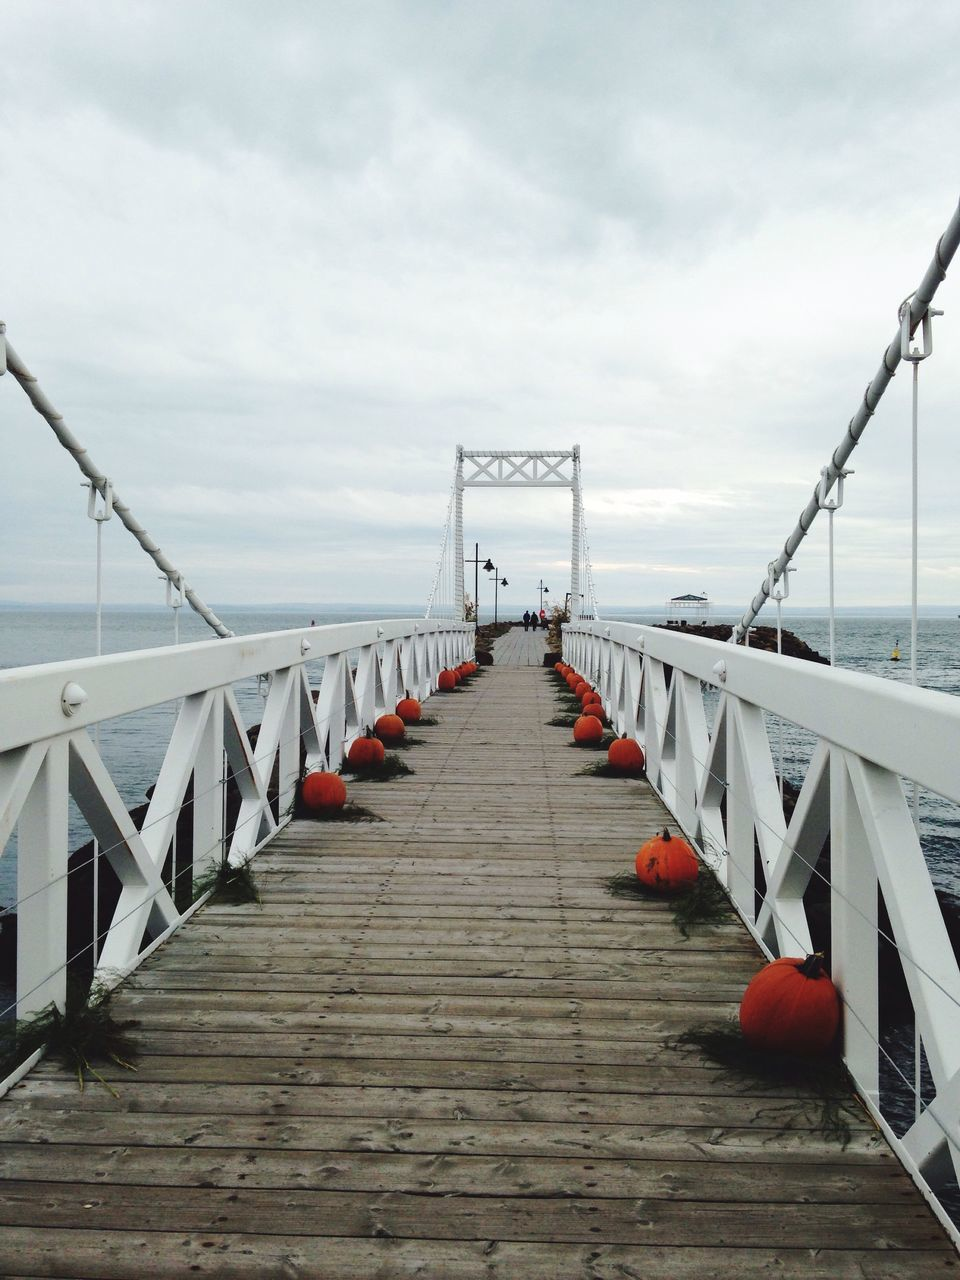 railing, the way forward, cloud - sky, outdoors, day, water, sky, no people, bridge - man made structure, red, nature, sea, tranquility, wood paneling, footbridge, horizon over water